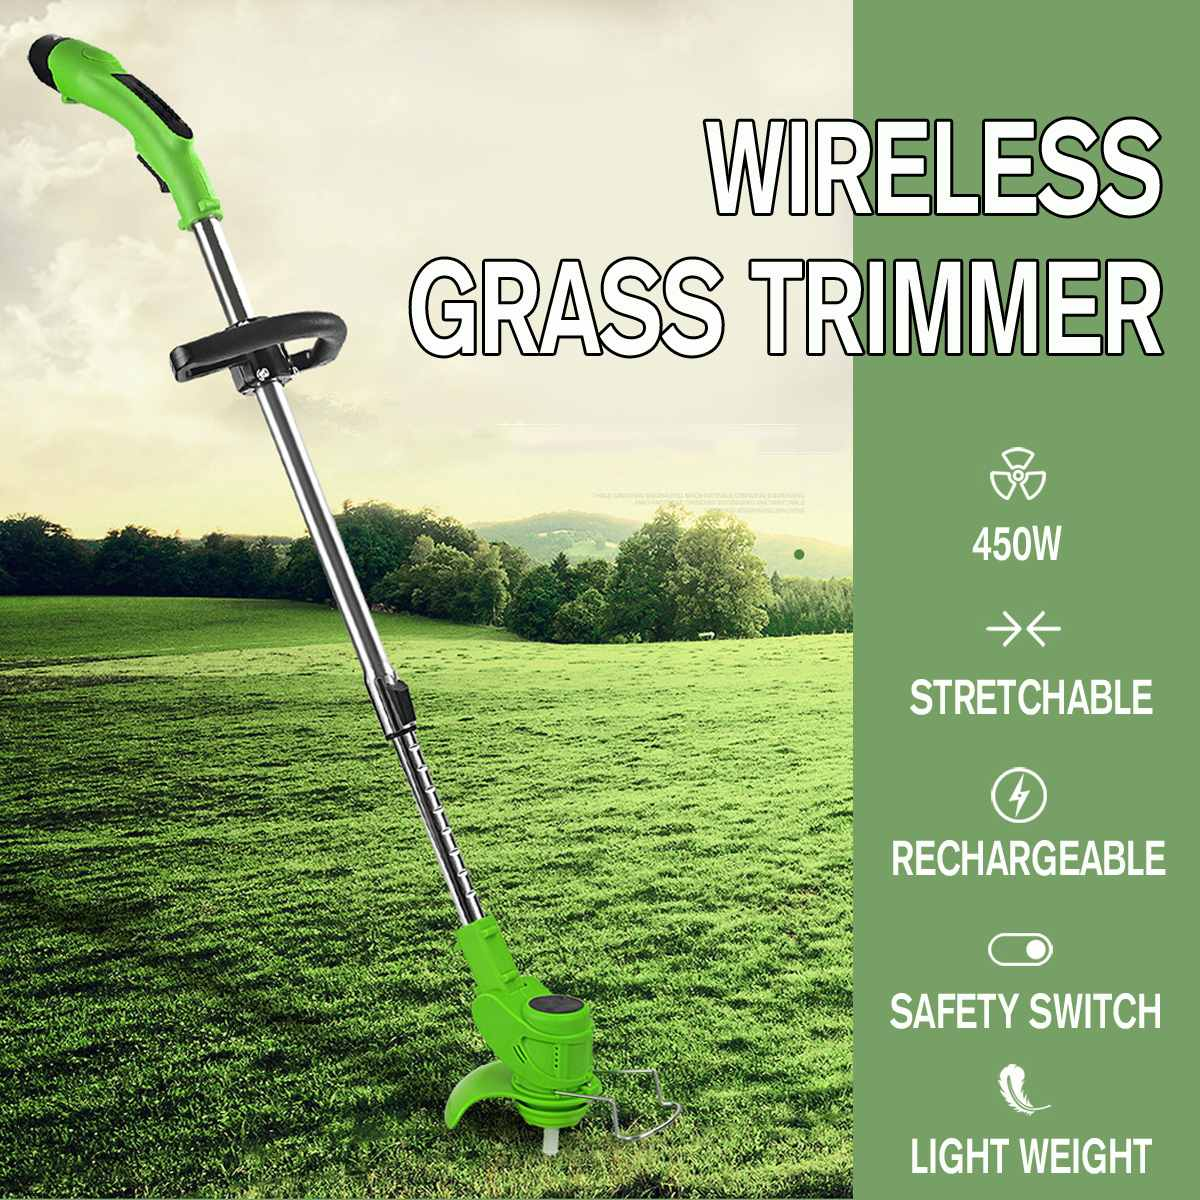 450W Rechargeable Wireless Grass Trimmer 2000mah 12V 18000rpm Adjustable Electric Garden Push Lawnmower Battery amp Charger 4Blade